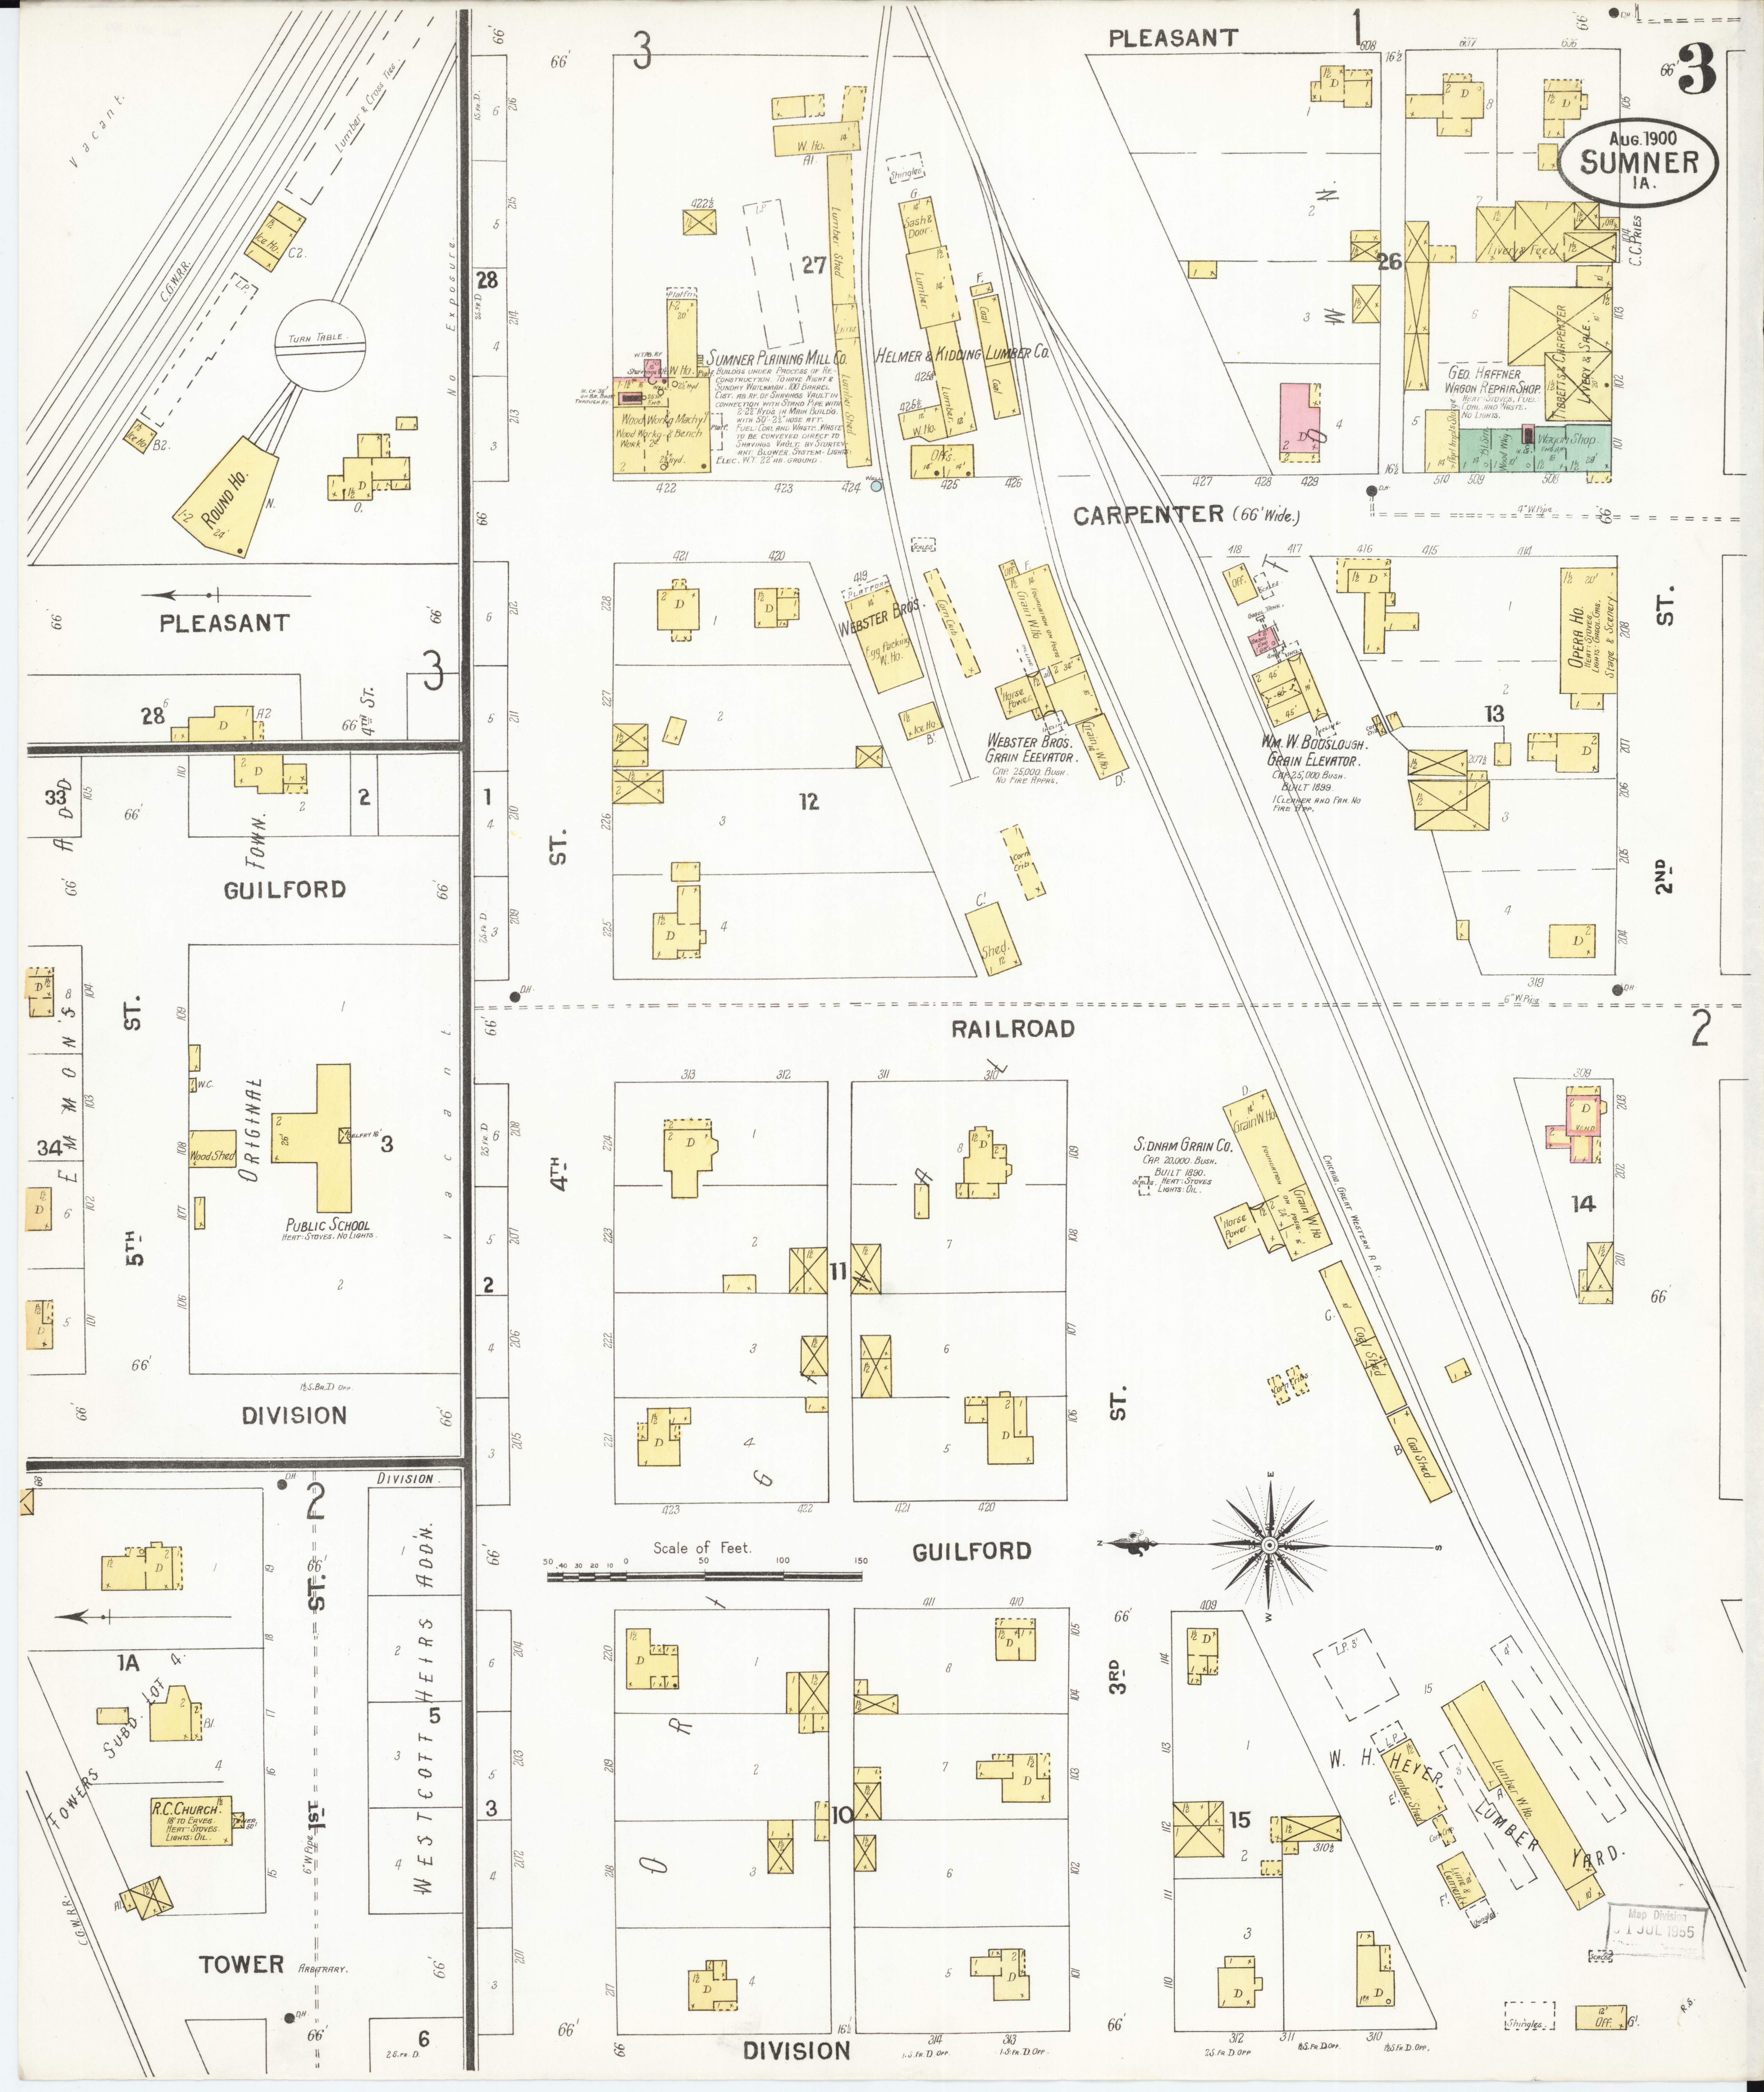 Sumner Iowa Map.File Sanborn Fire Insurance Map From Sumner Bremer County Iowa